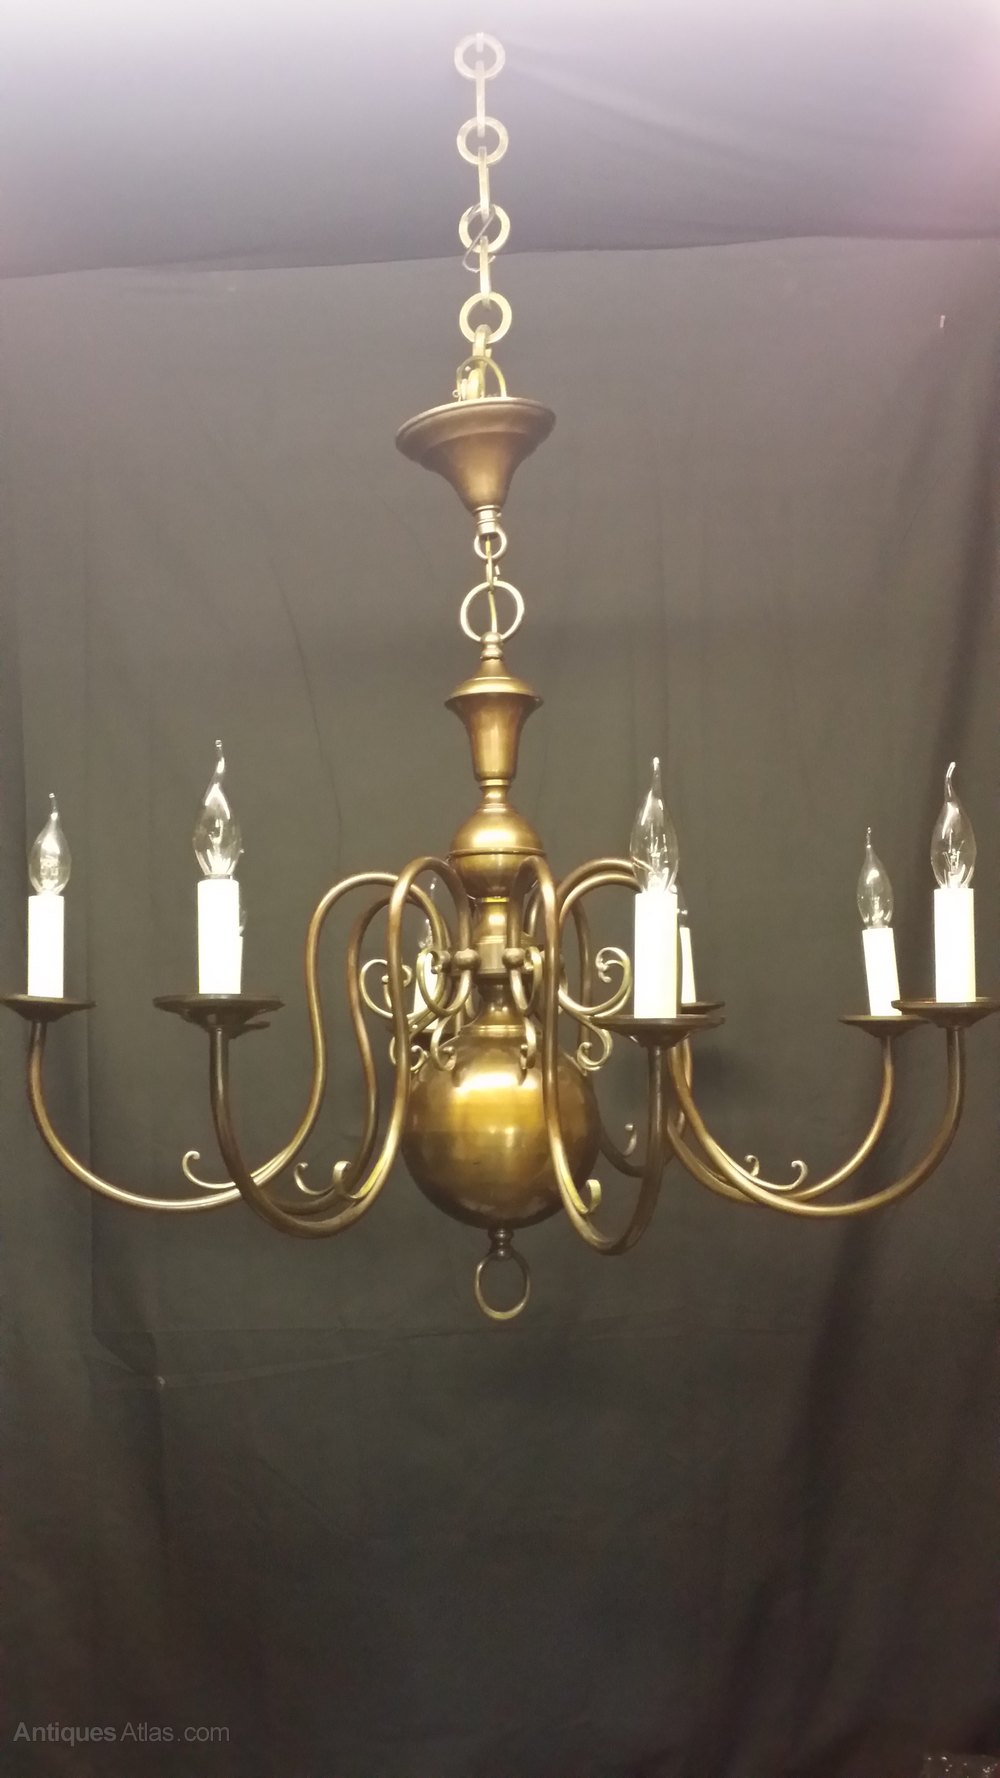 Brass flemish chandeliers flemish chandeliers this is a large impressive brass eight light flemish chandelier this chandelier has been rewired and has been fitted with new bulb sockets and brackets arubaitofo Gallery